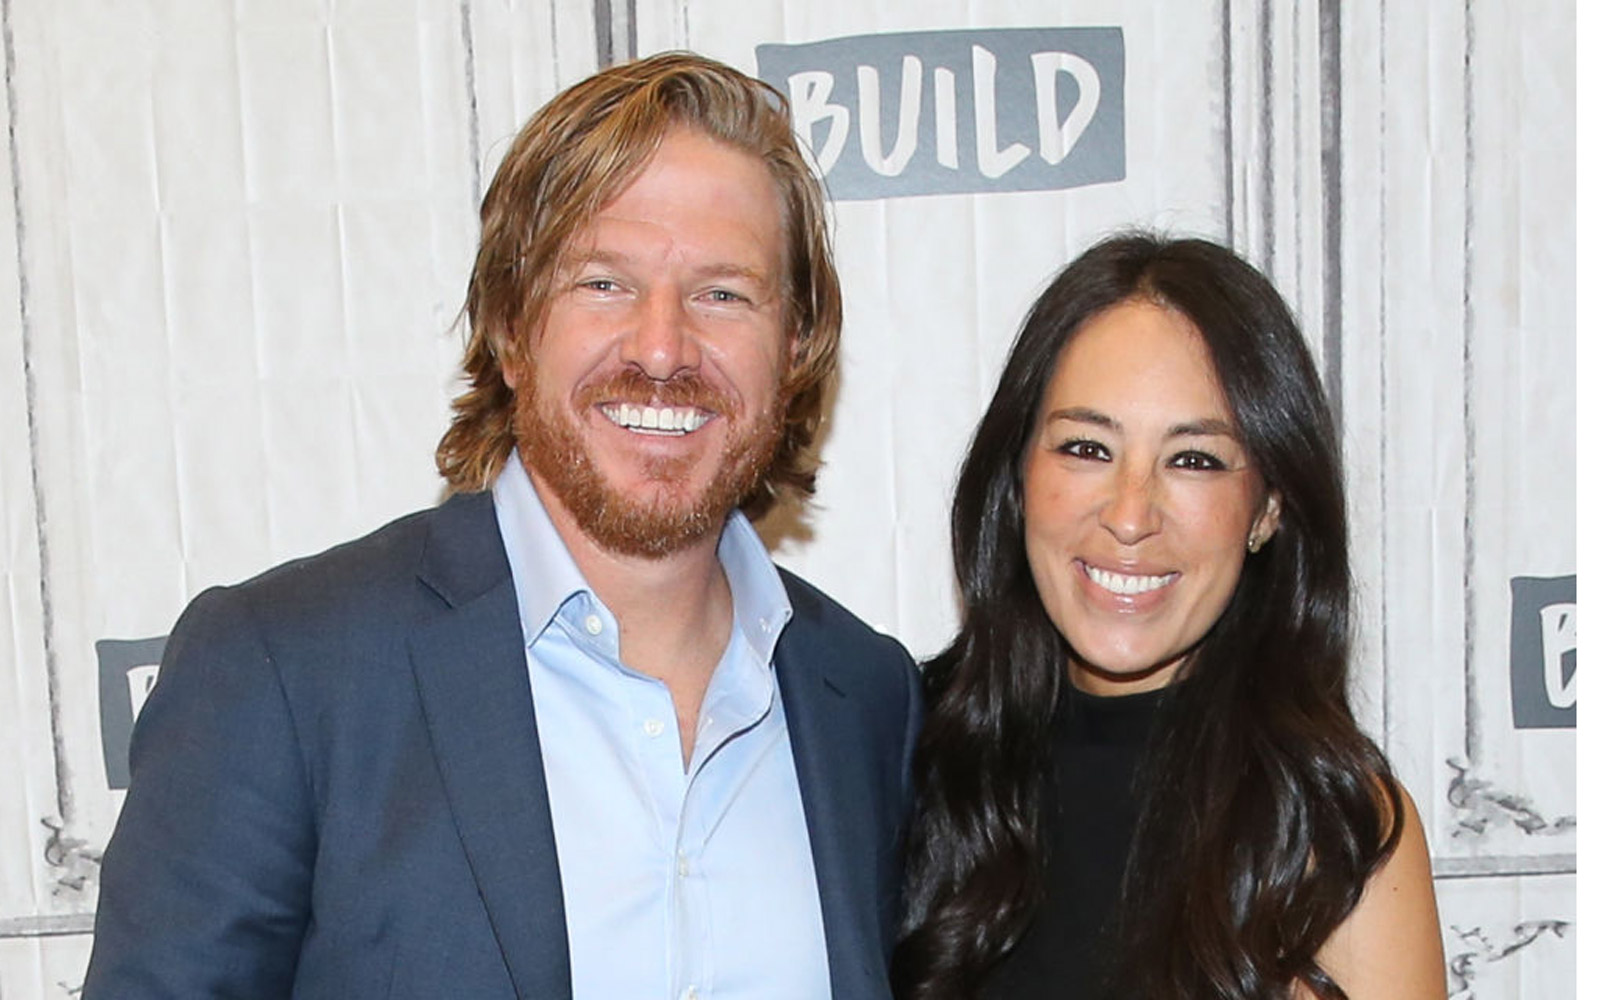 Chip and Joanna Gaines' New Series Takes You Behind the Scenes of 'Fixer Upper'